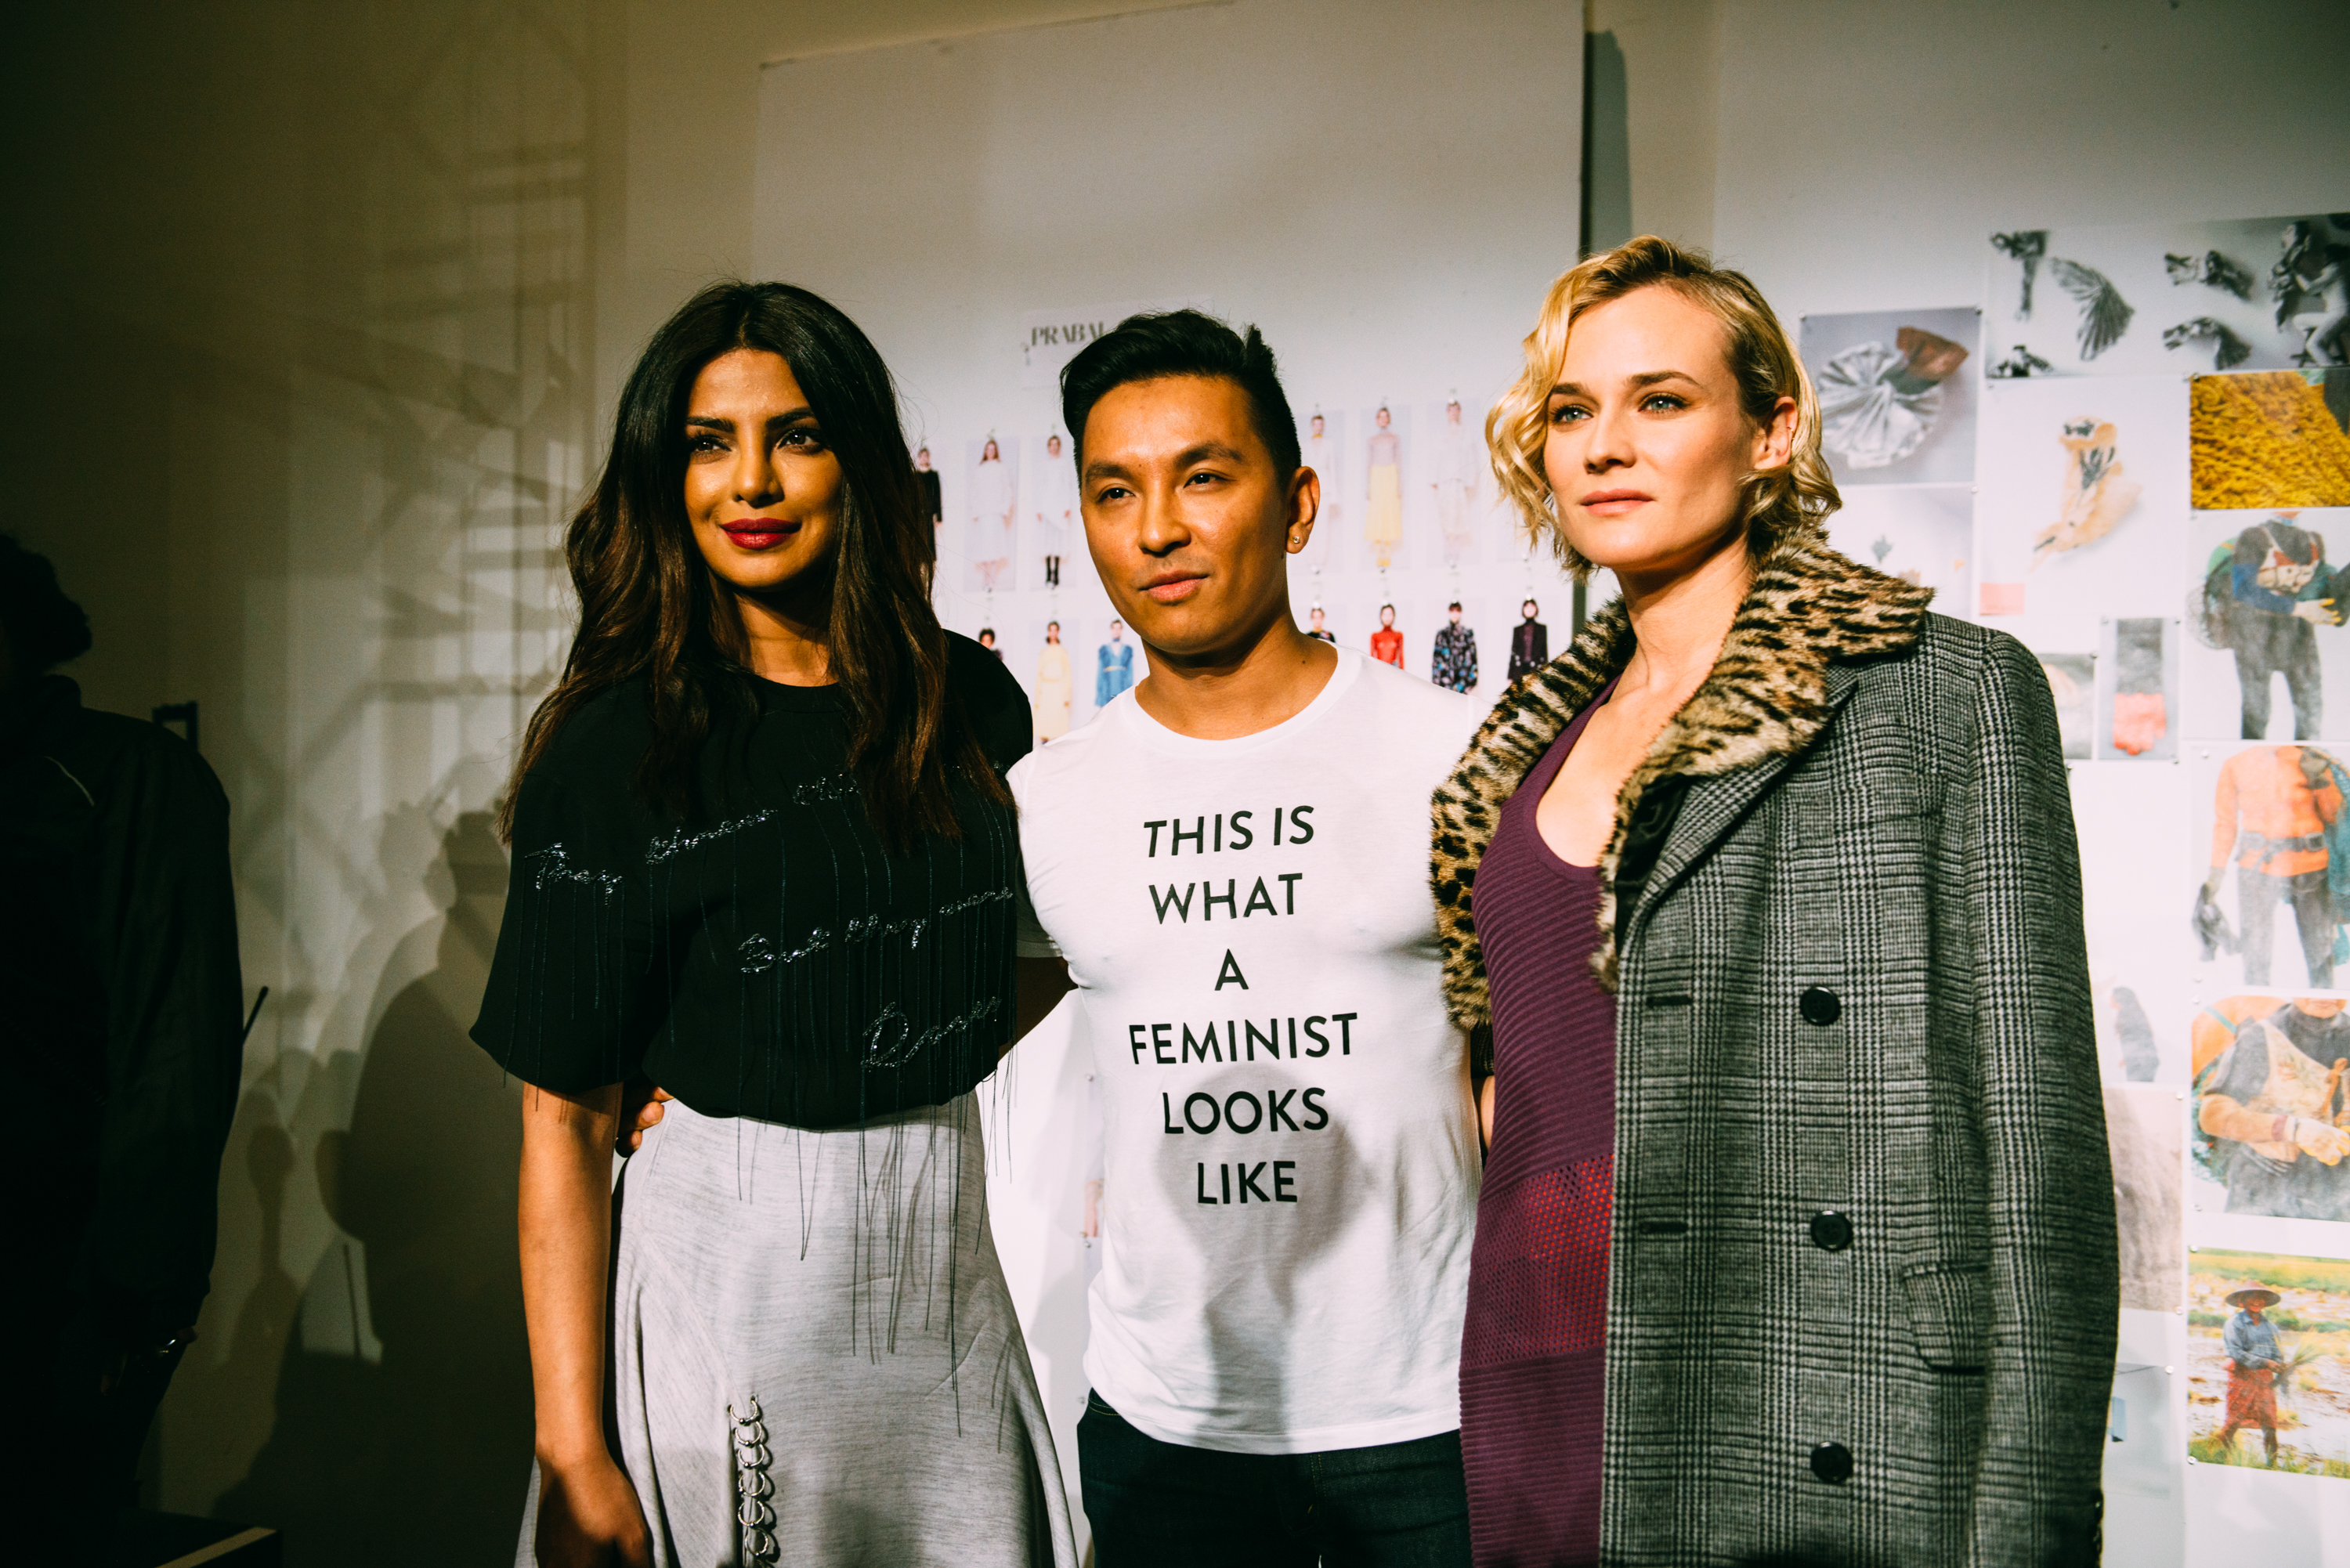 Designer Prabal Gurung Is On A Quest To Build A Luxury Brand With A Soul